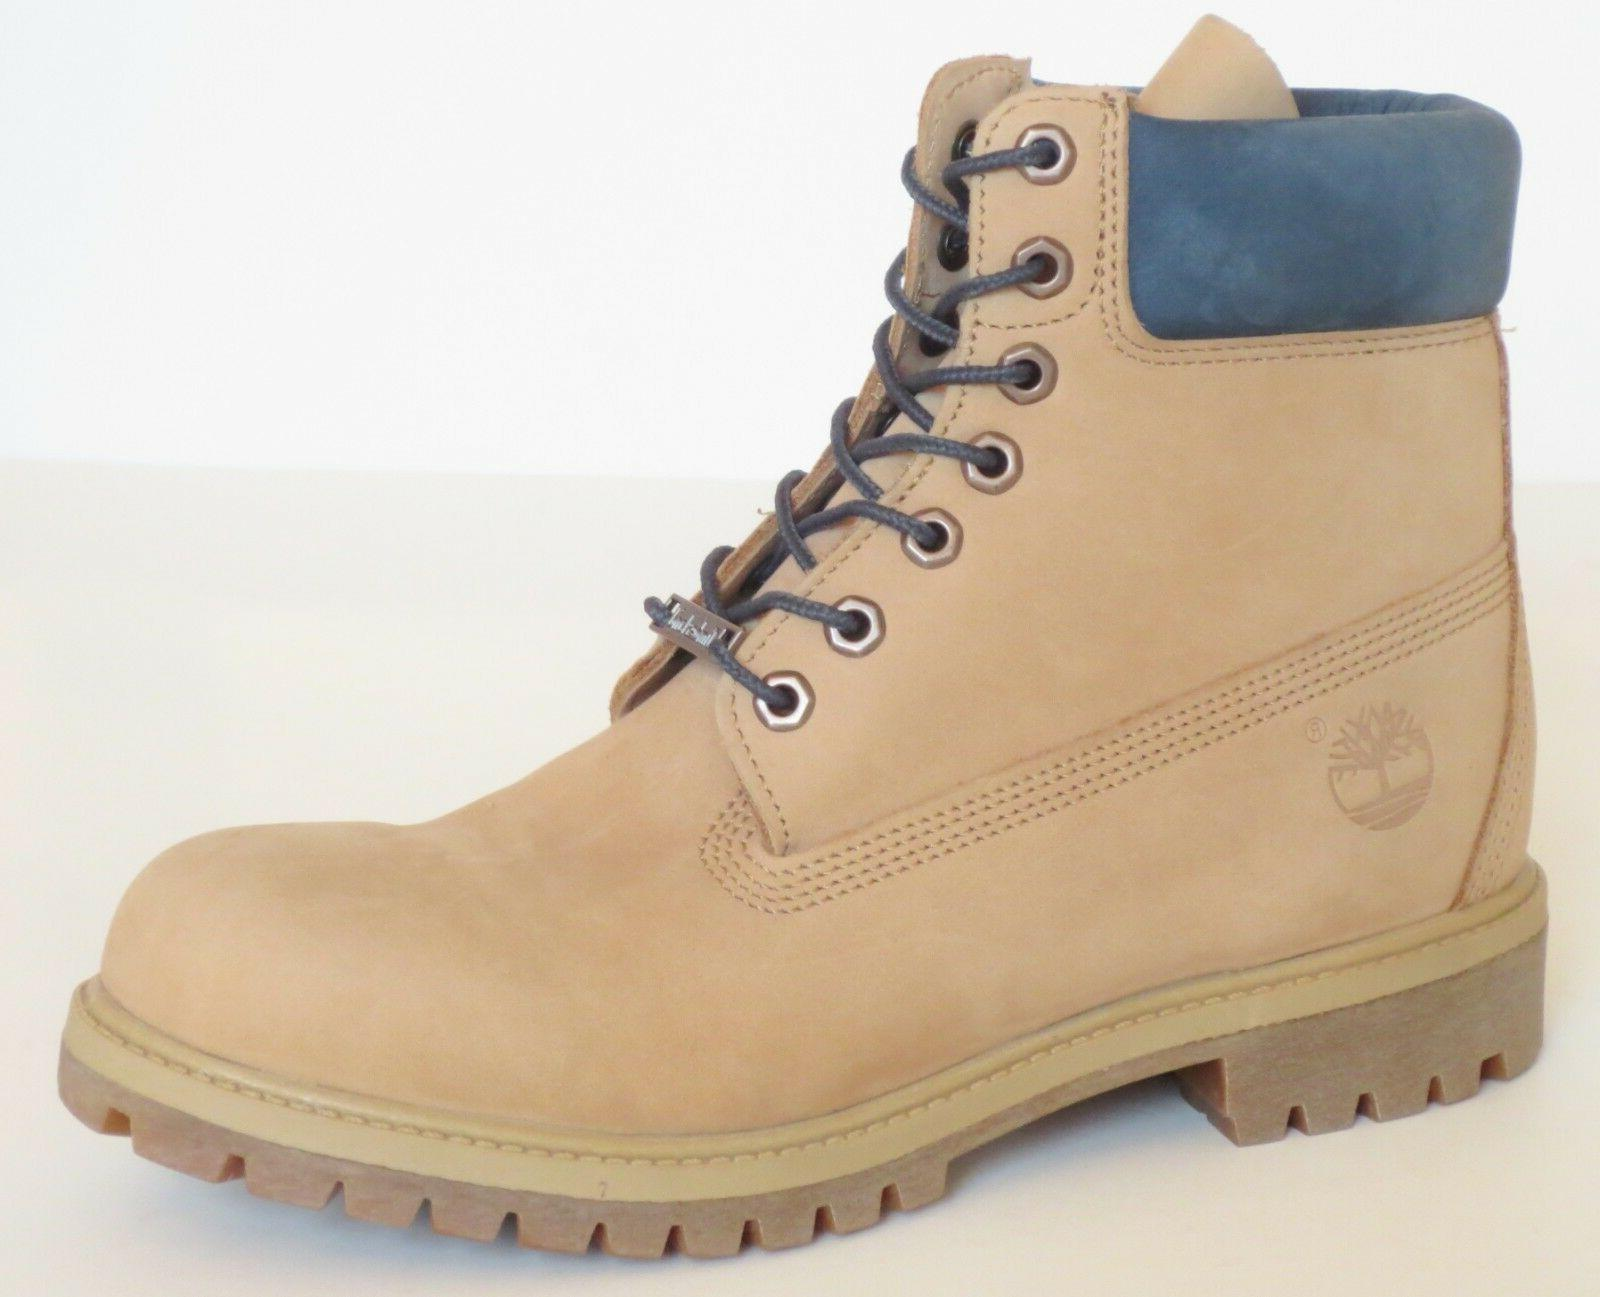 Timberland Men's 6 Inch Premium Leather Work Boots Style A1L